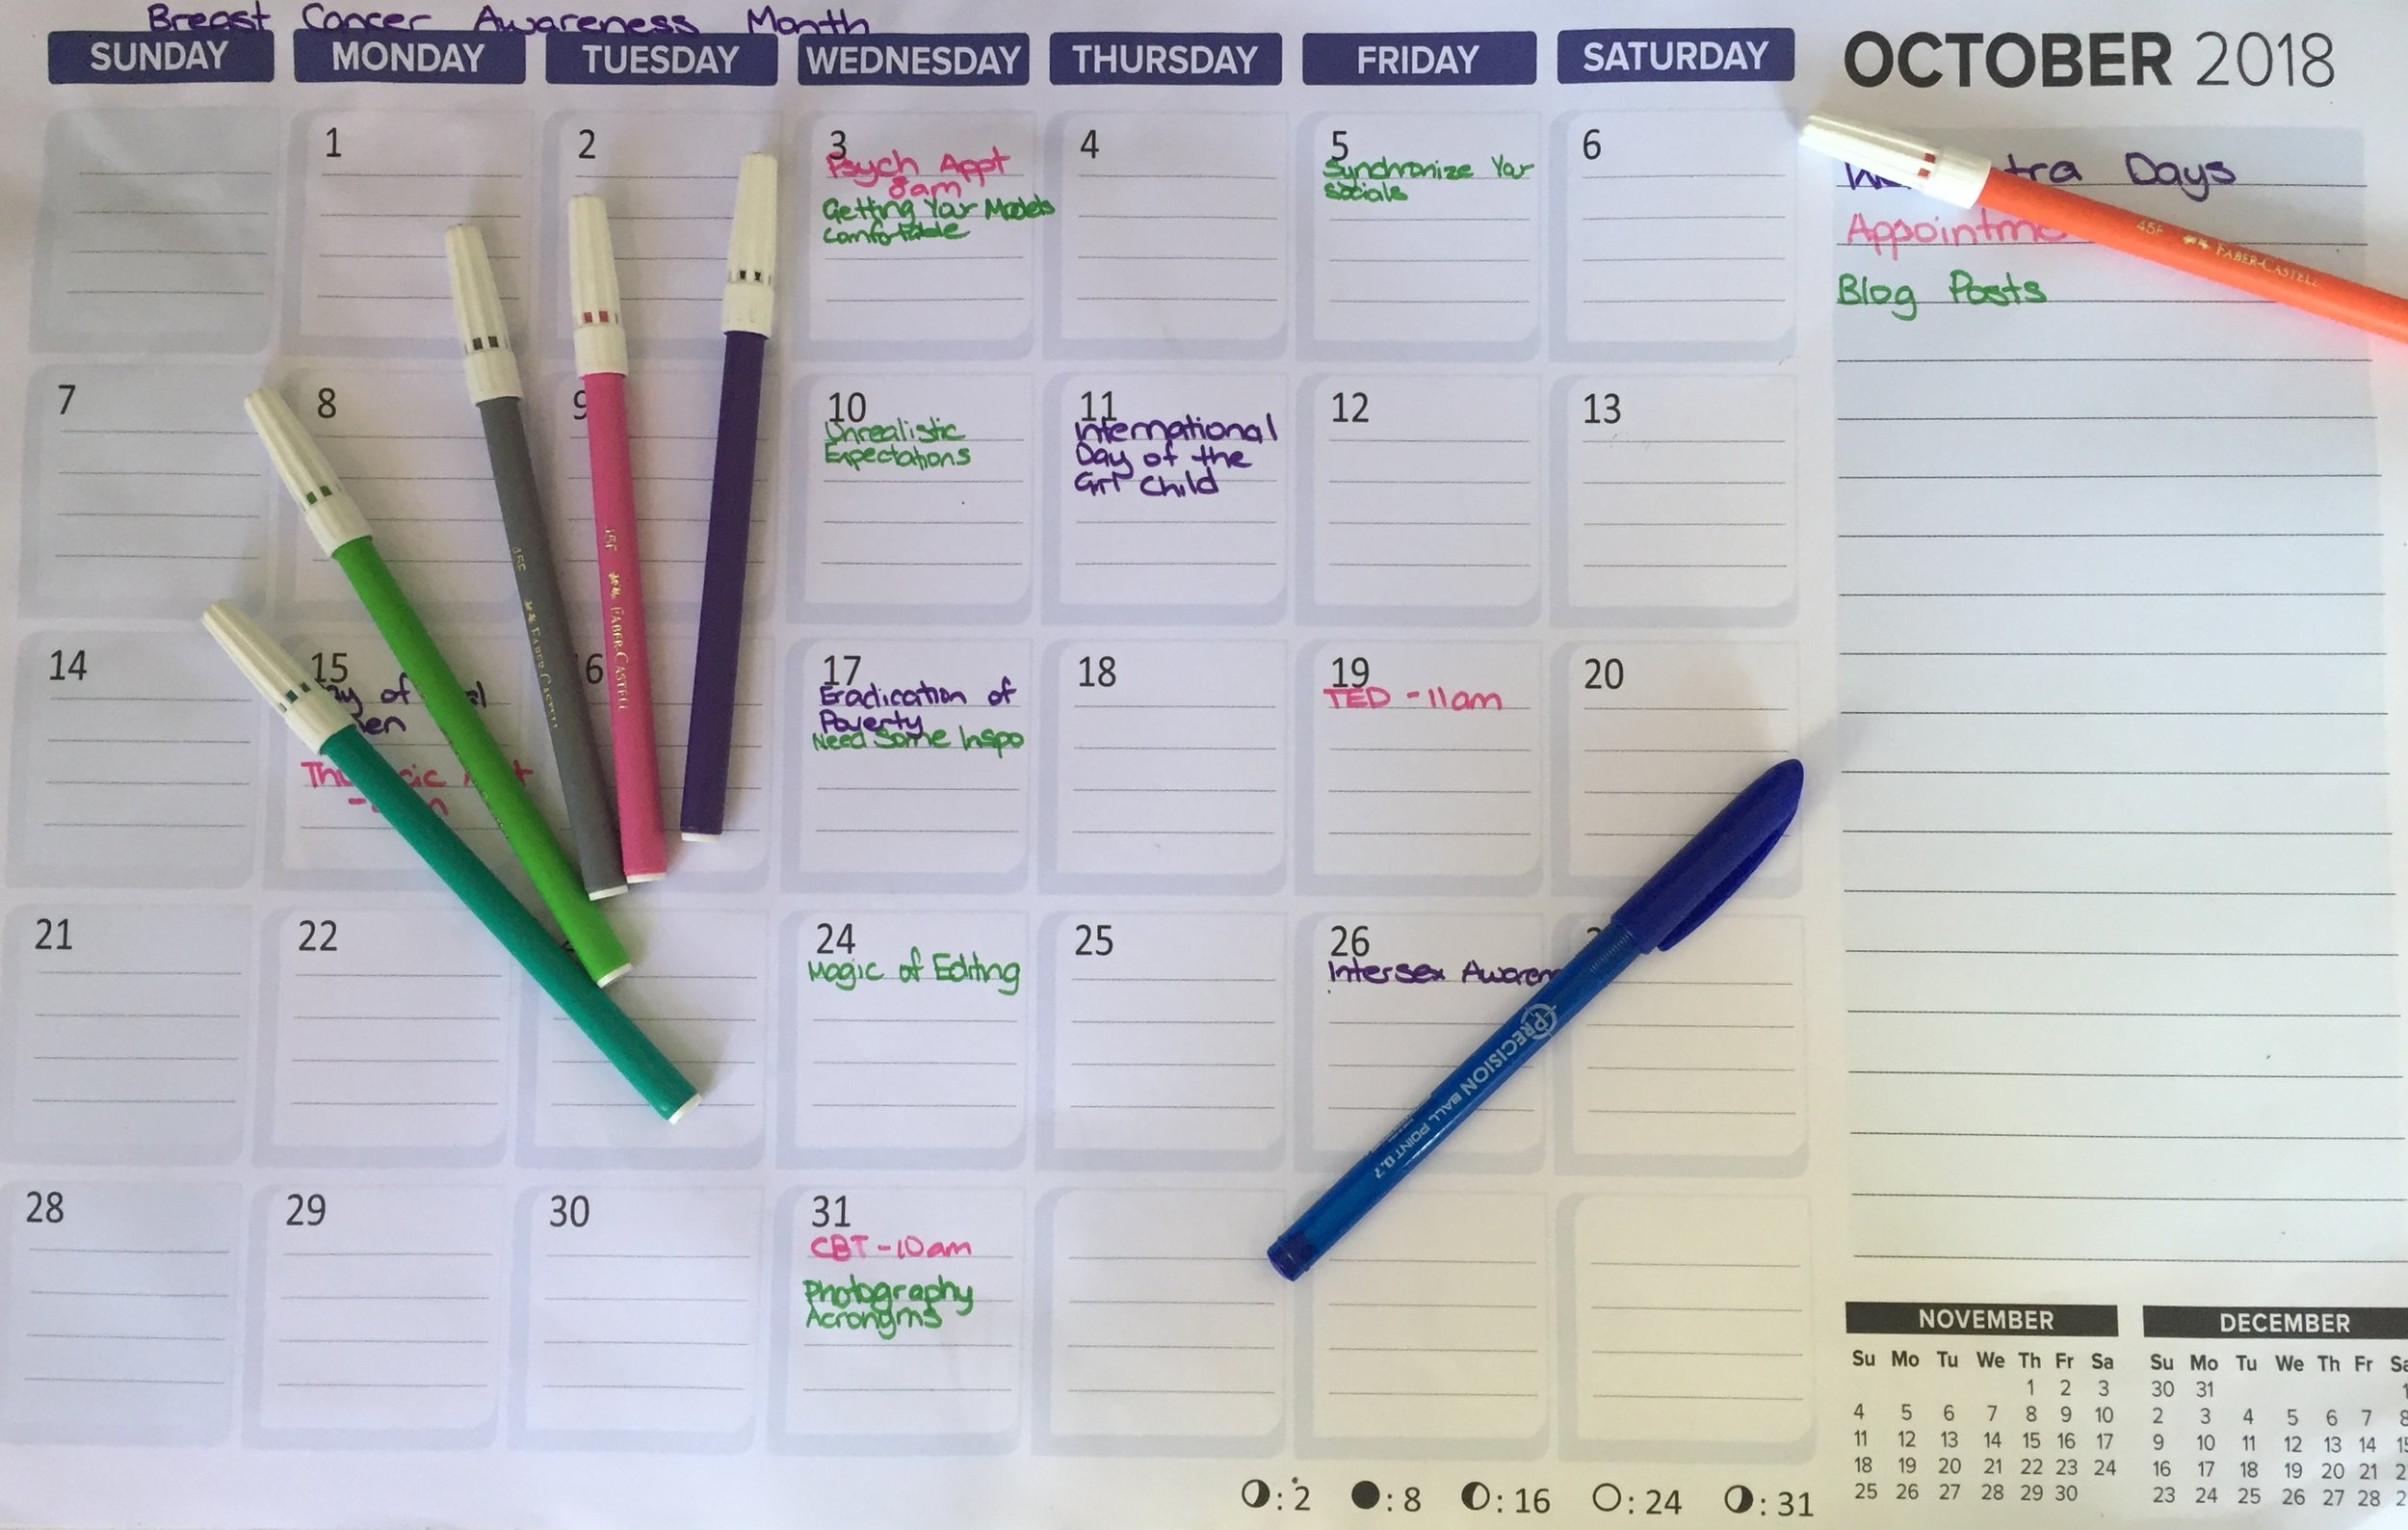 My calendar for the month of October. You can see all of my scheduled blog posts that will be going up this month.